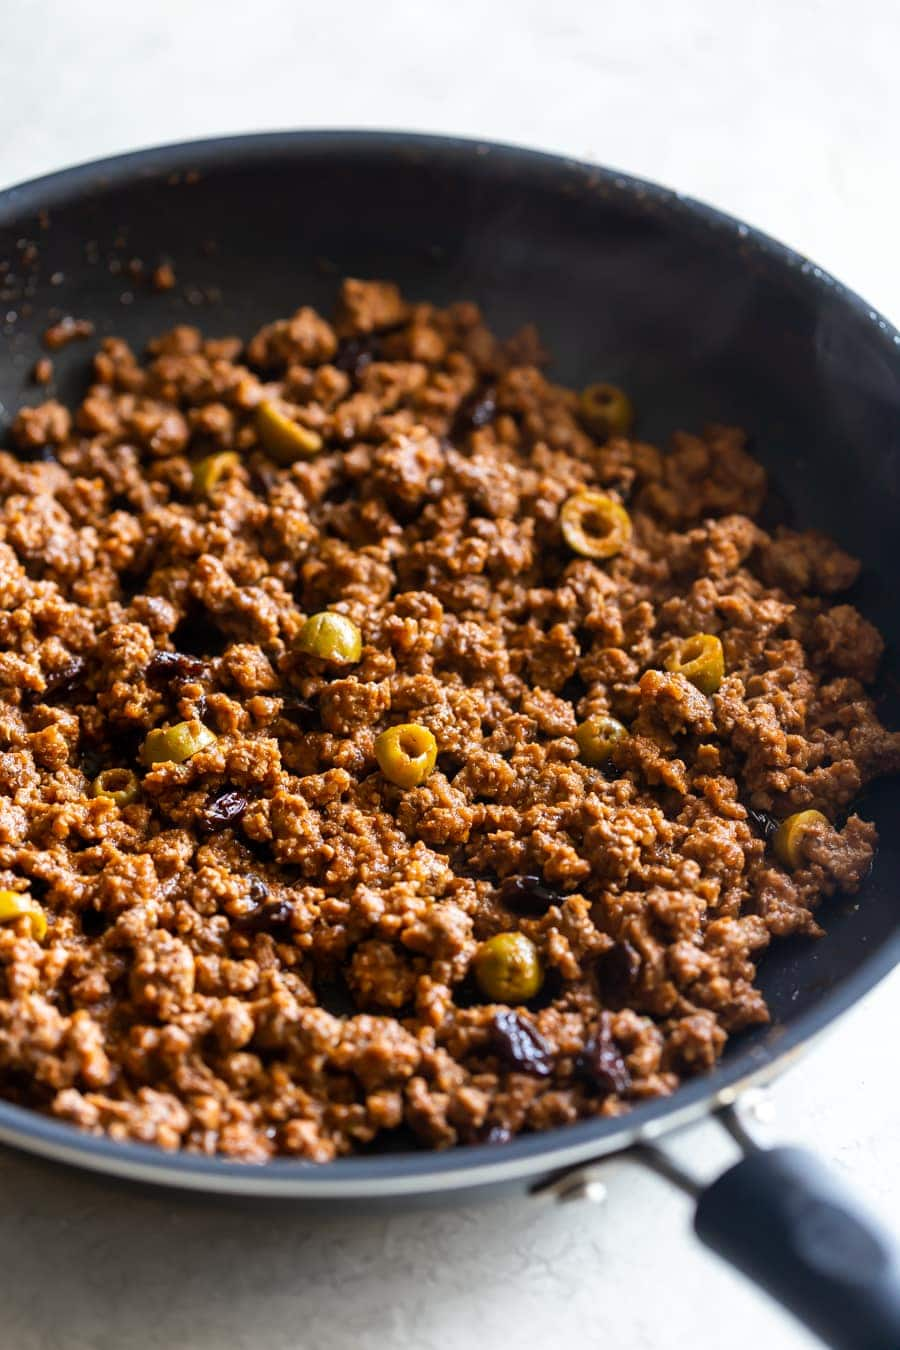 cuban picadillo cooked in a skillet